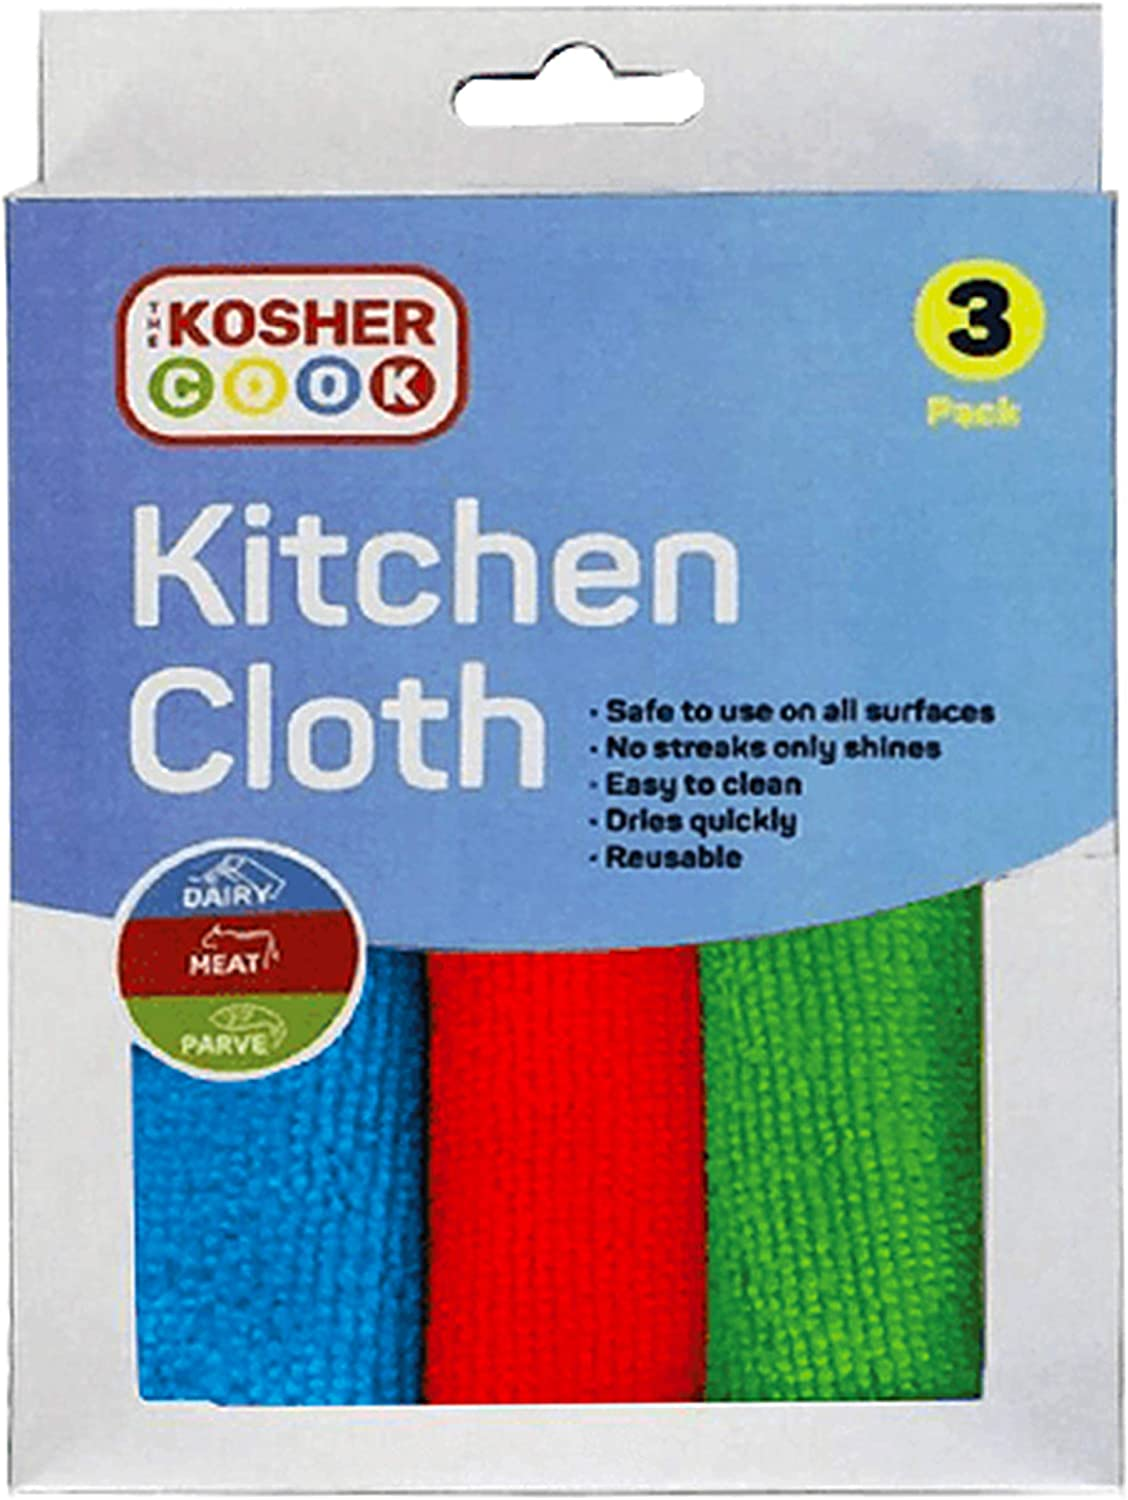 Microfiber Dish Cloths, 3 Pack – Red, Blue and Green Quick Drying, Highly Absorbent Rags for Cleaning and Drying Counters and Dishes – Color Coded Home and Kitchen Accessories by The Kosher Cook